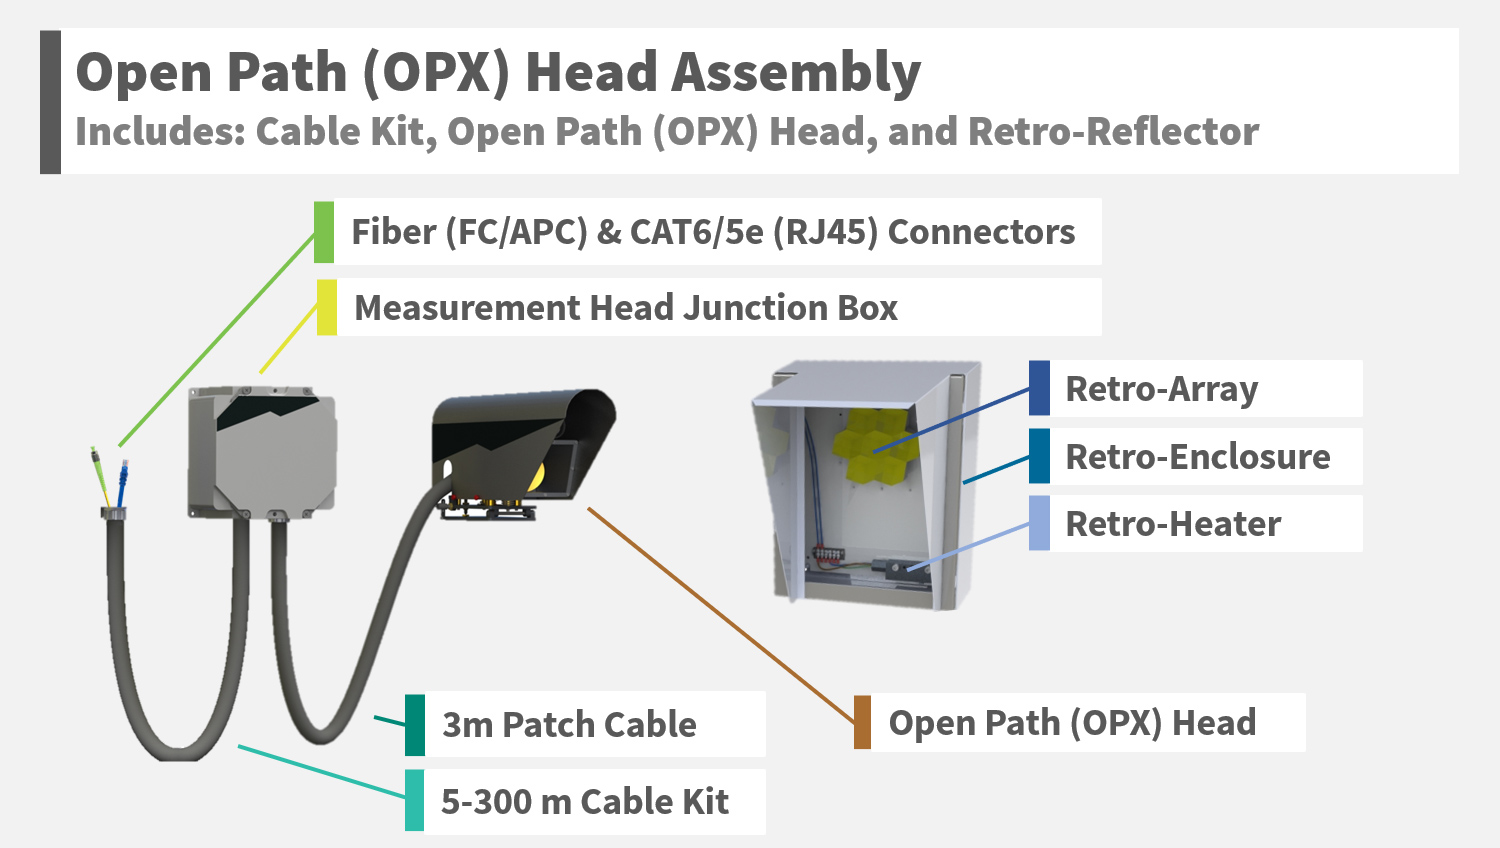 Open Path OPX Head Assembly